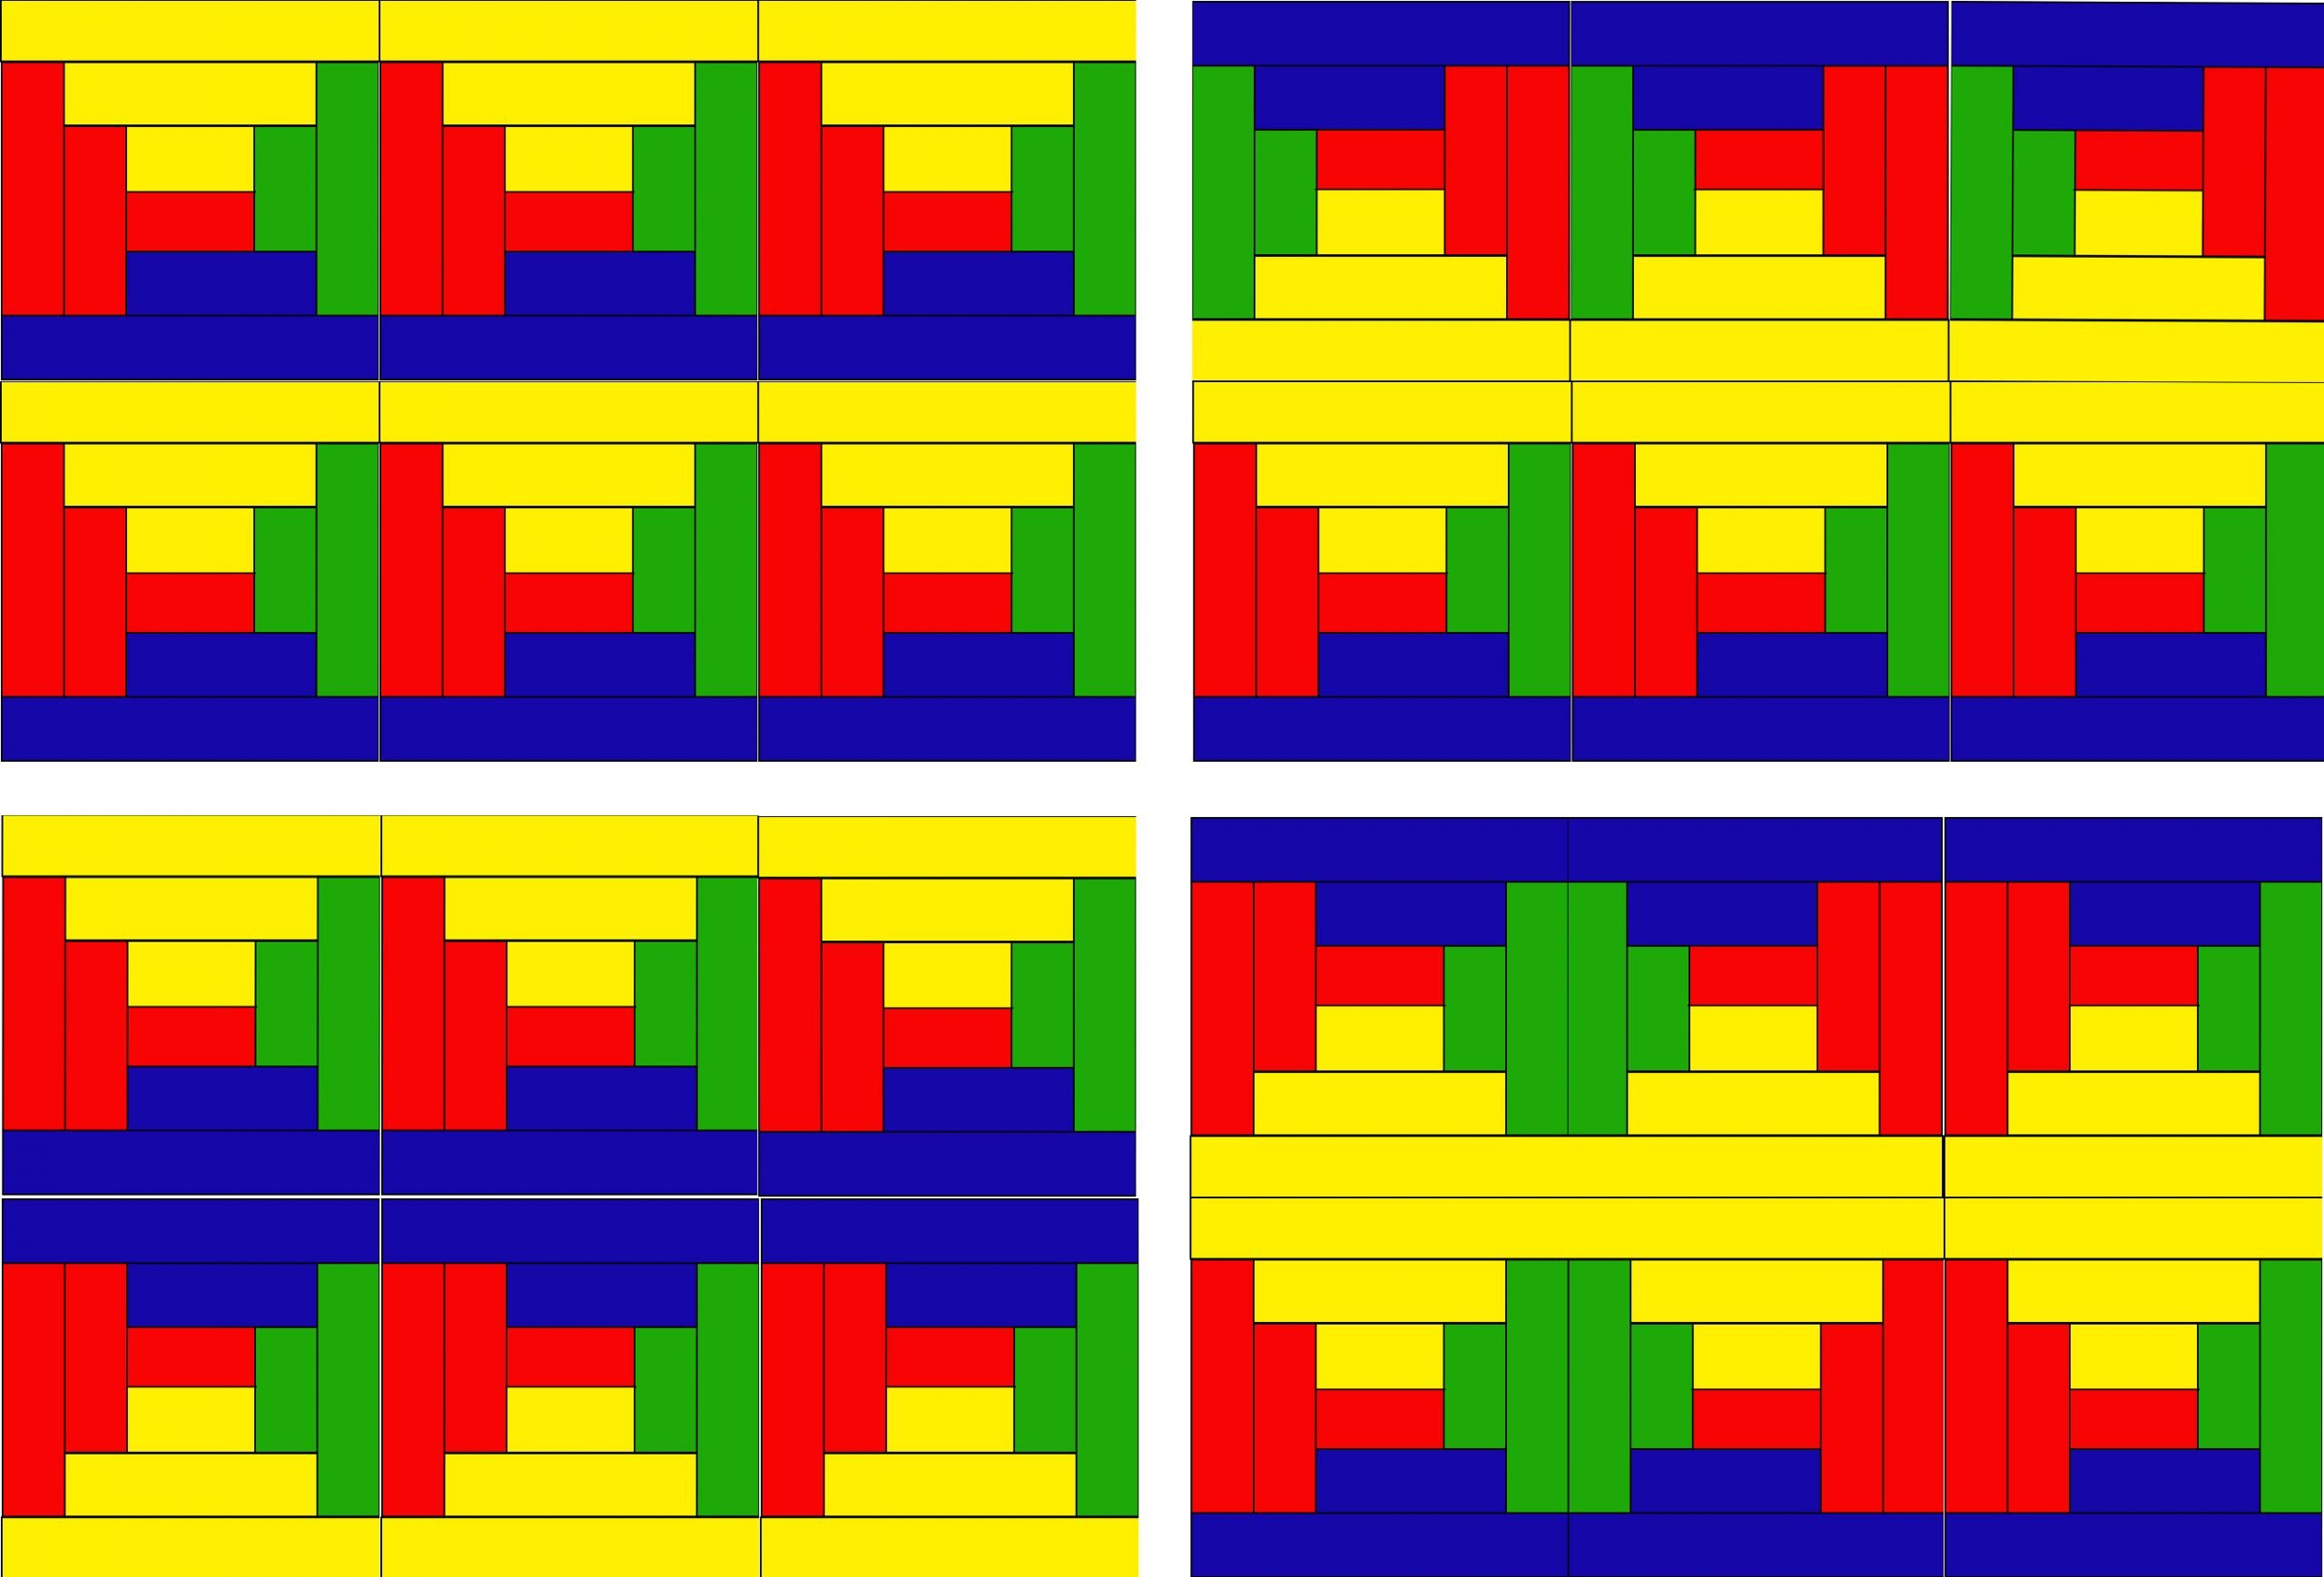 A graphic representation of 4 different rectangles made up up bars of red, yellow, green, and blue.